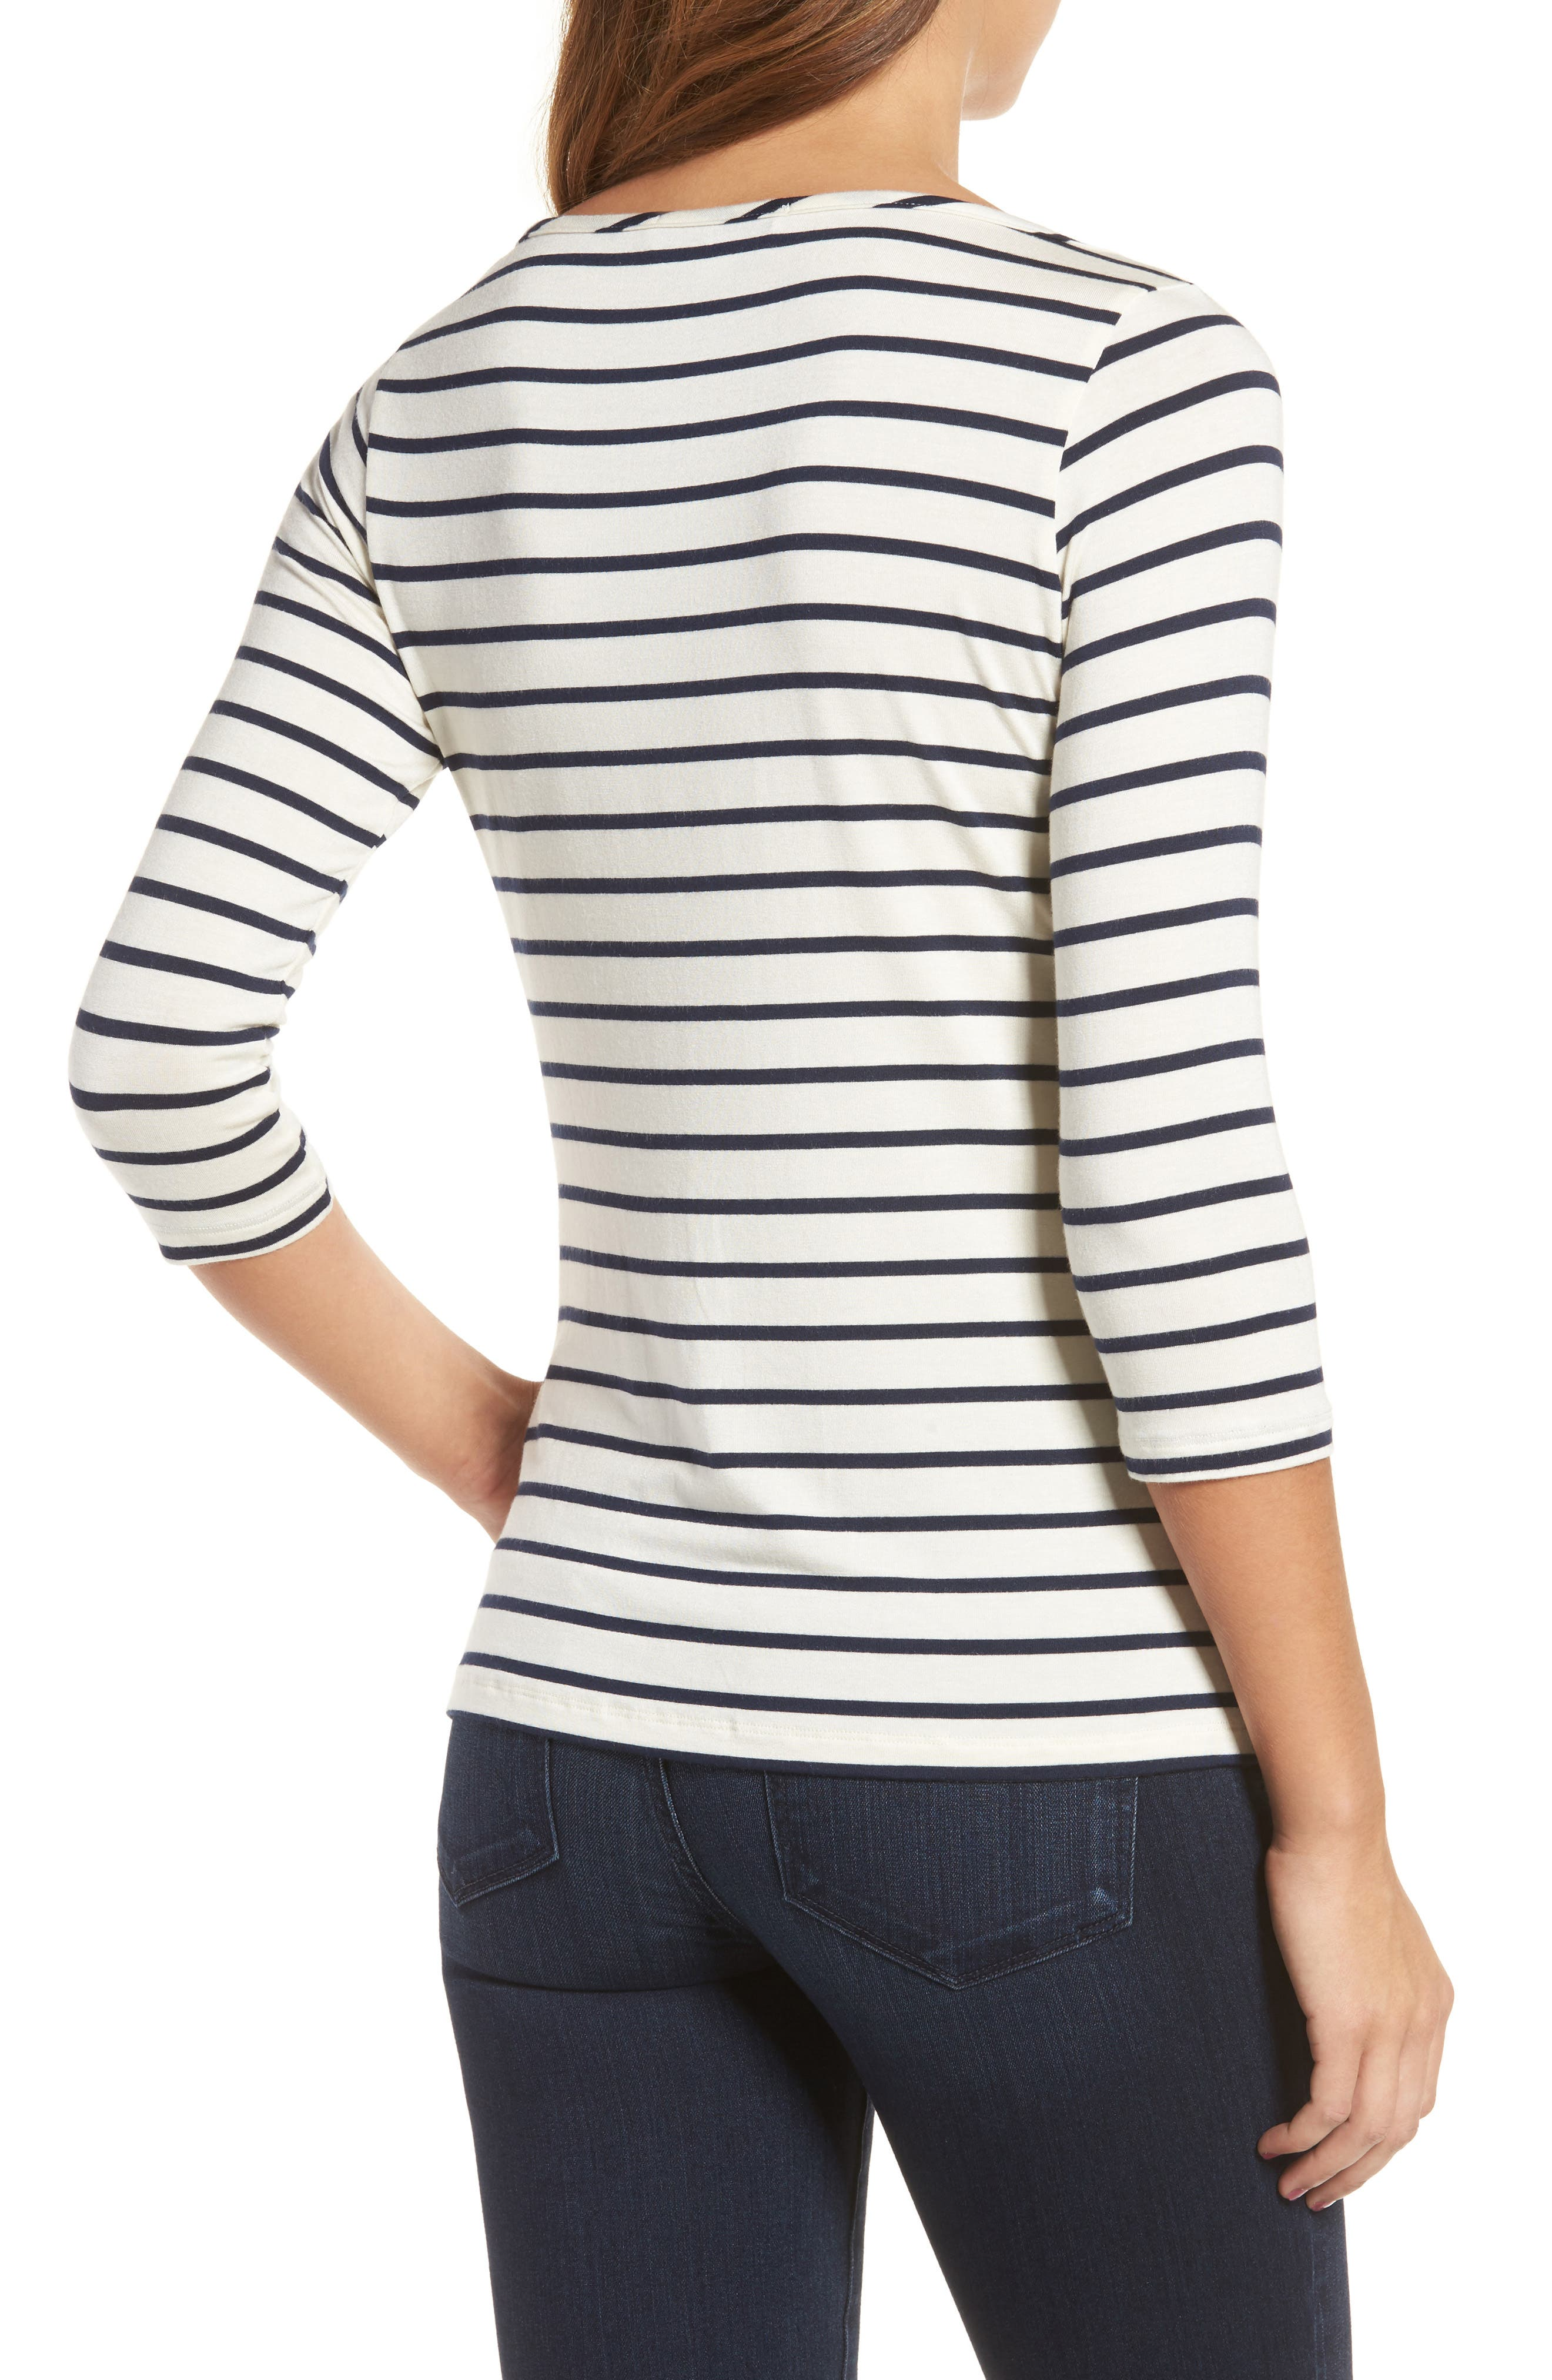 ac4e3ee8a7c Women's Boat Neck Tops | Nordstrom